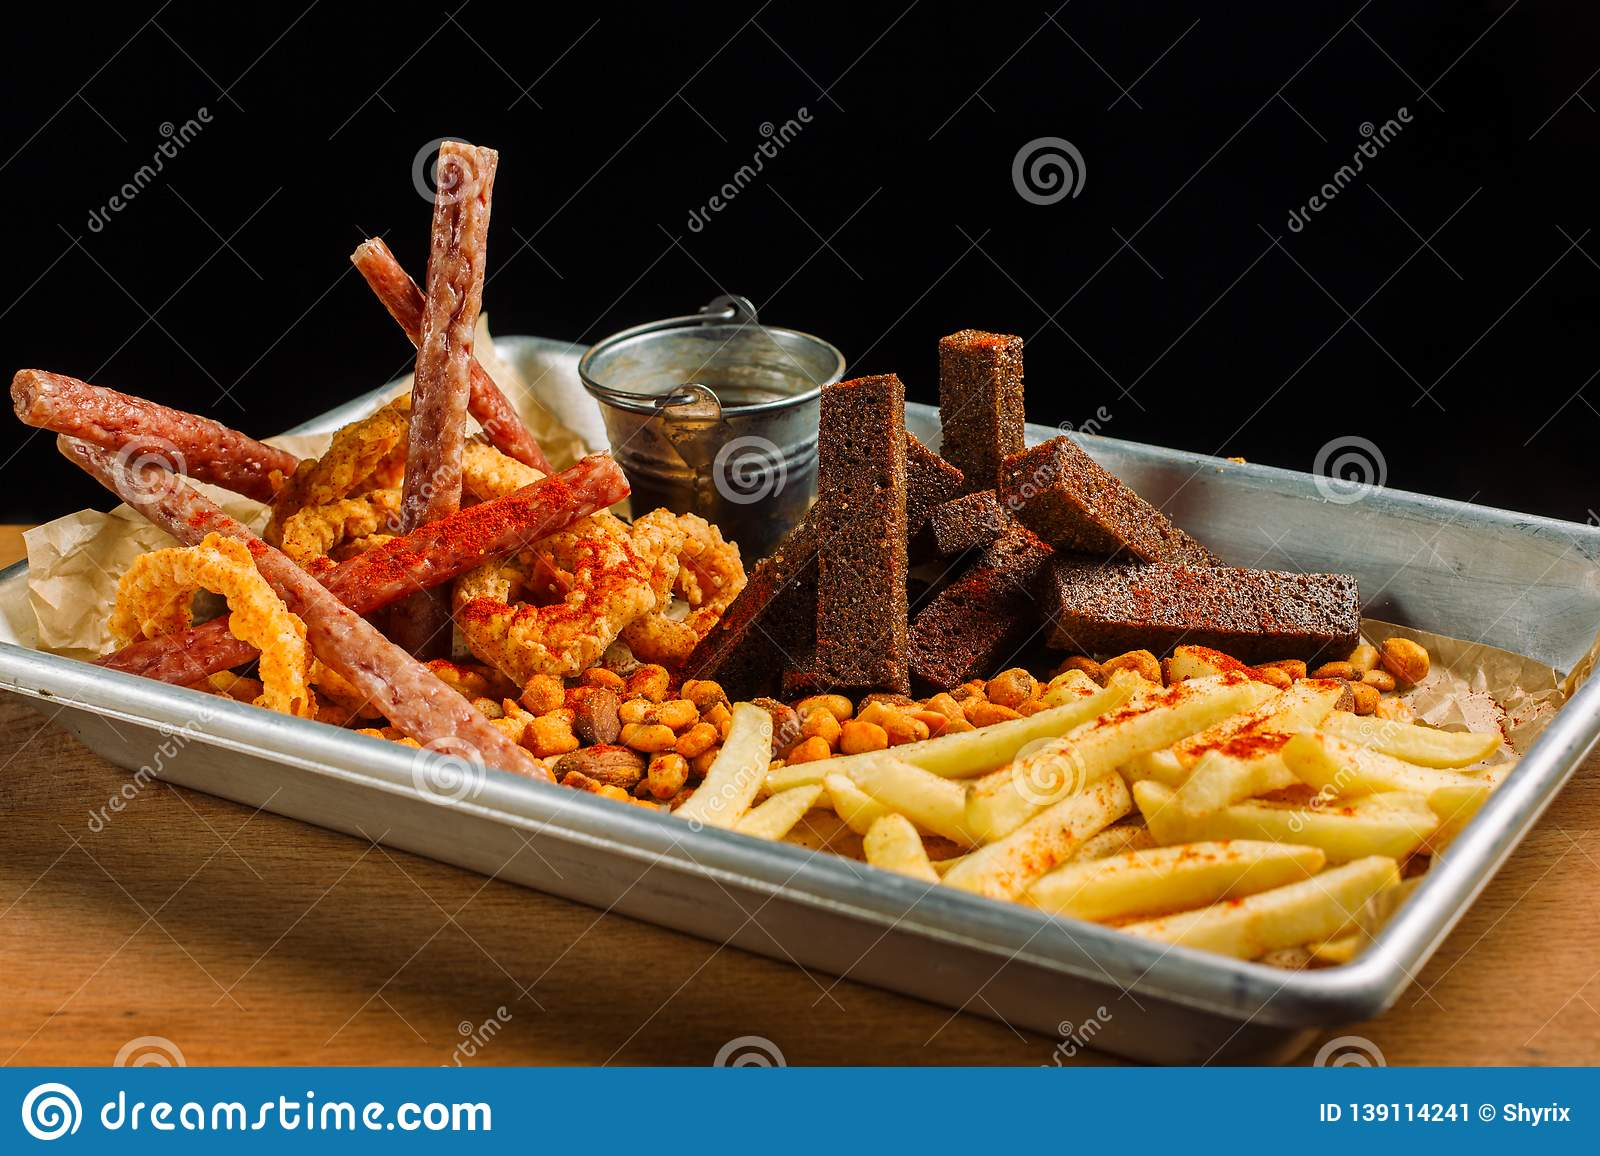 Snack to beer. Beer metal tray with a mountain of food.